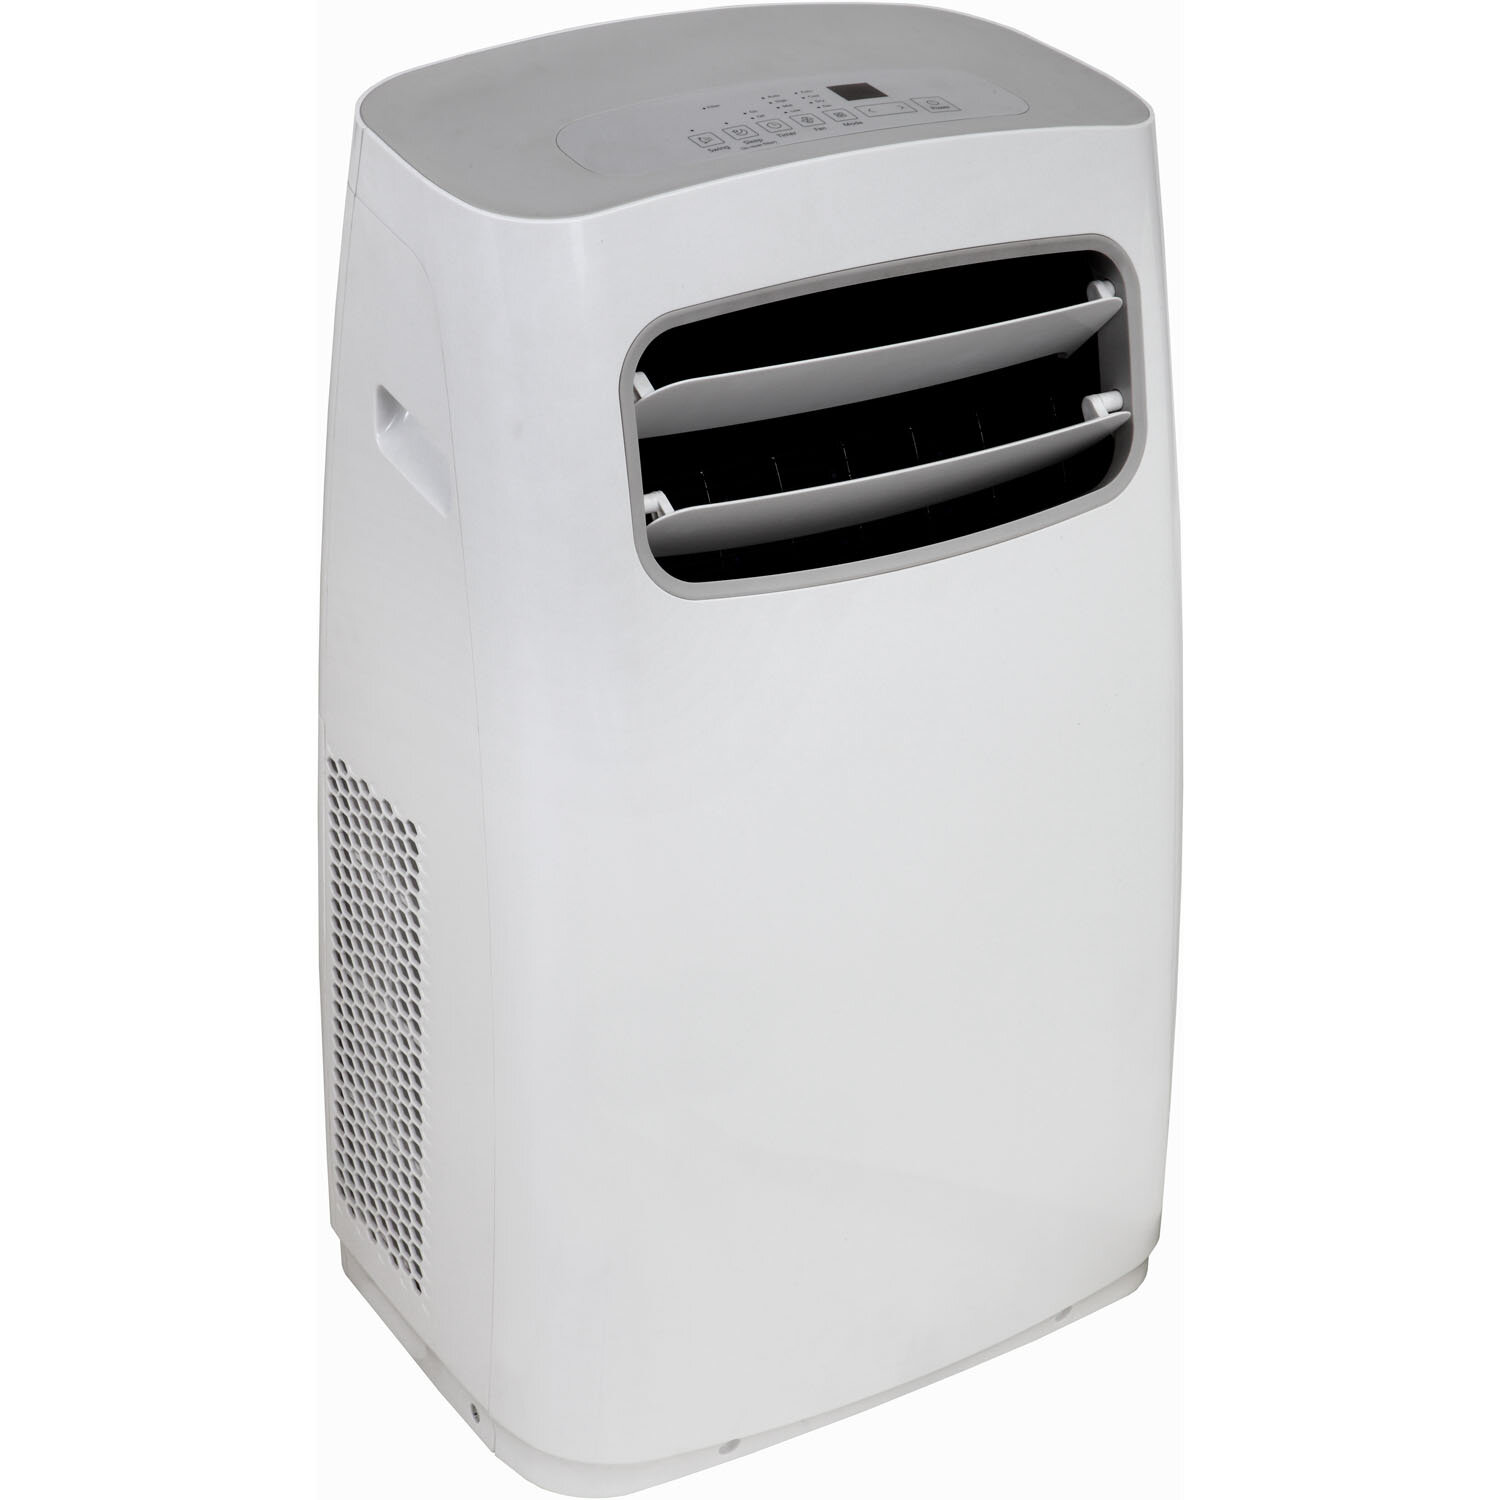 Details about Keystone 14 000 BTU Portable Air Conditioner with Remote #696662